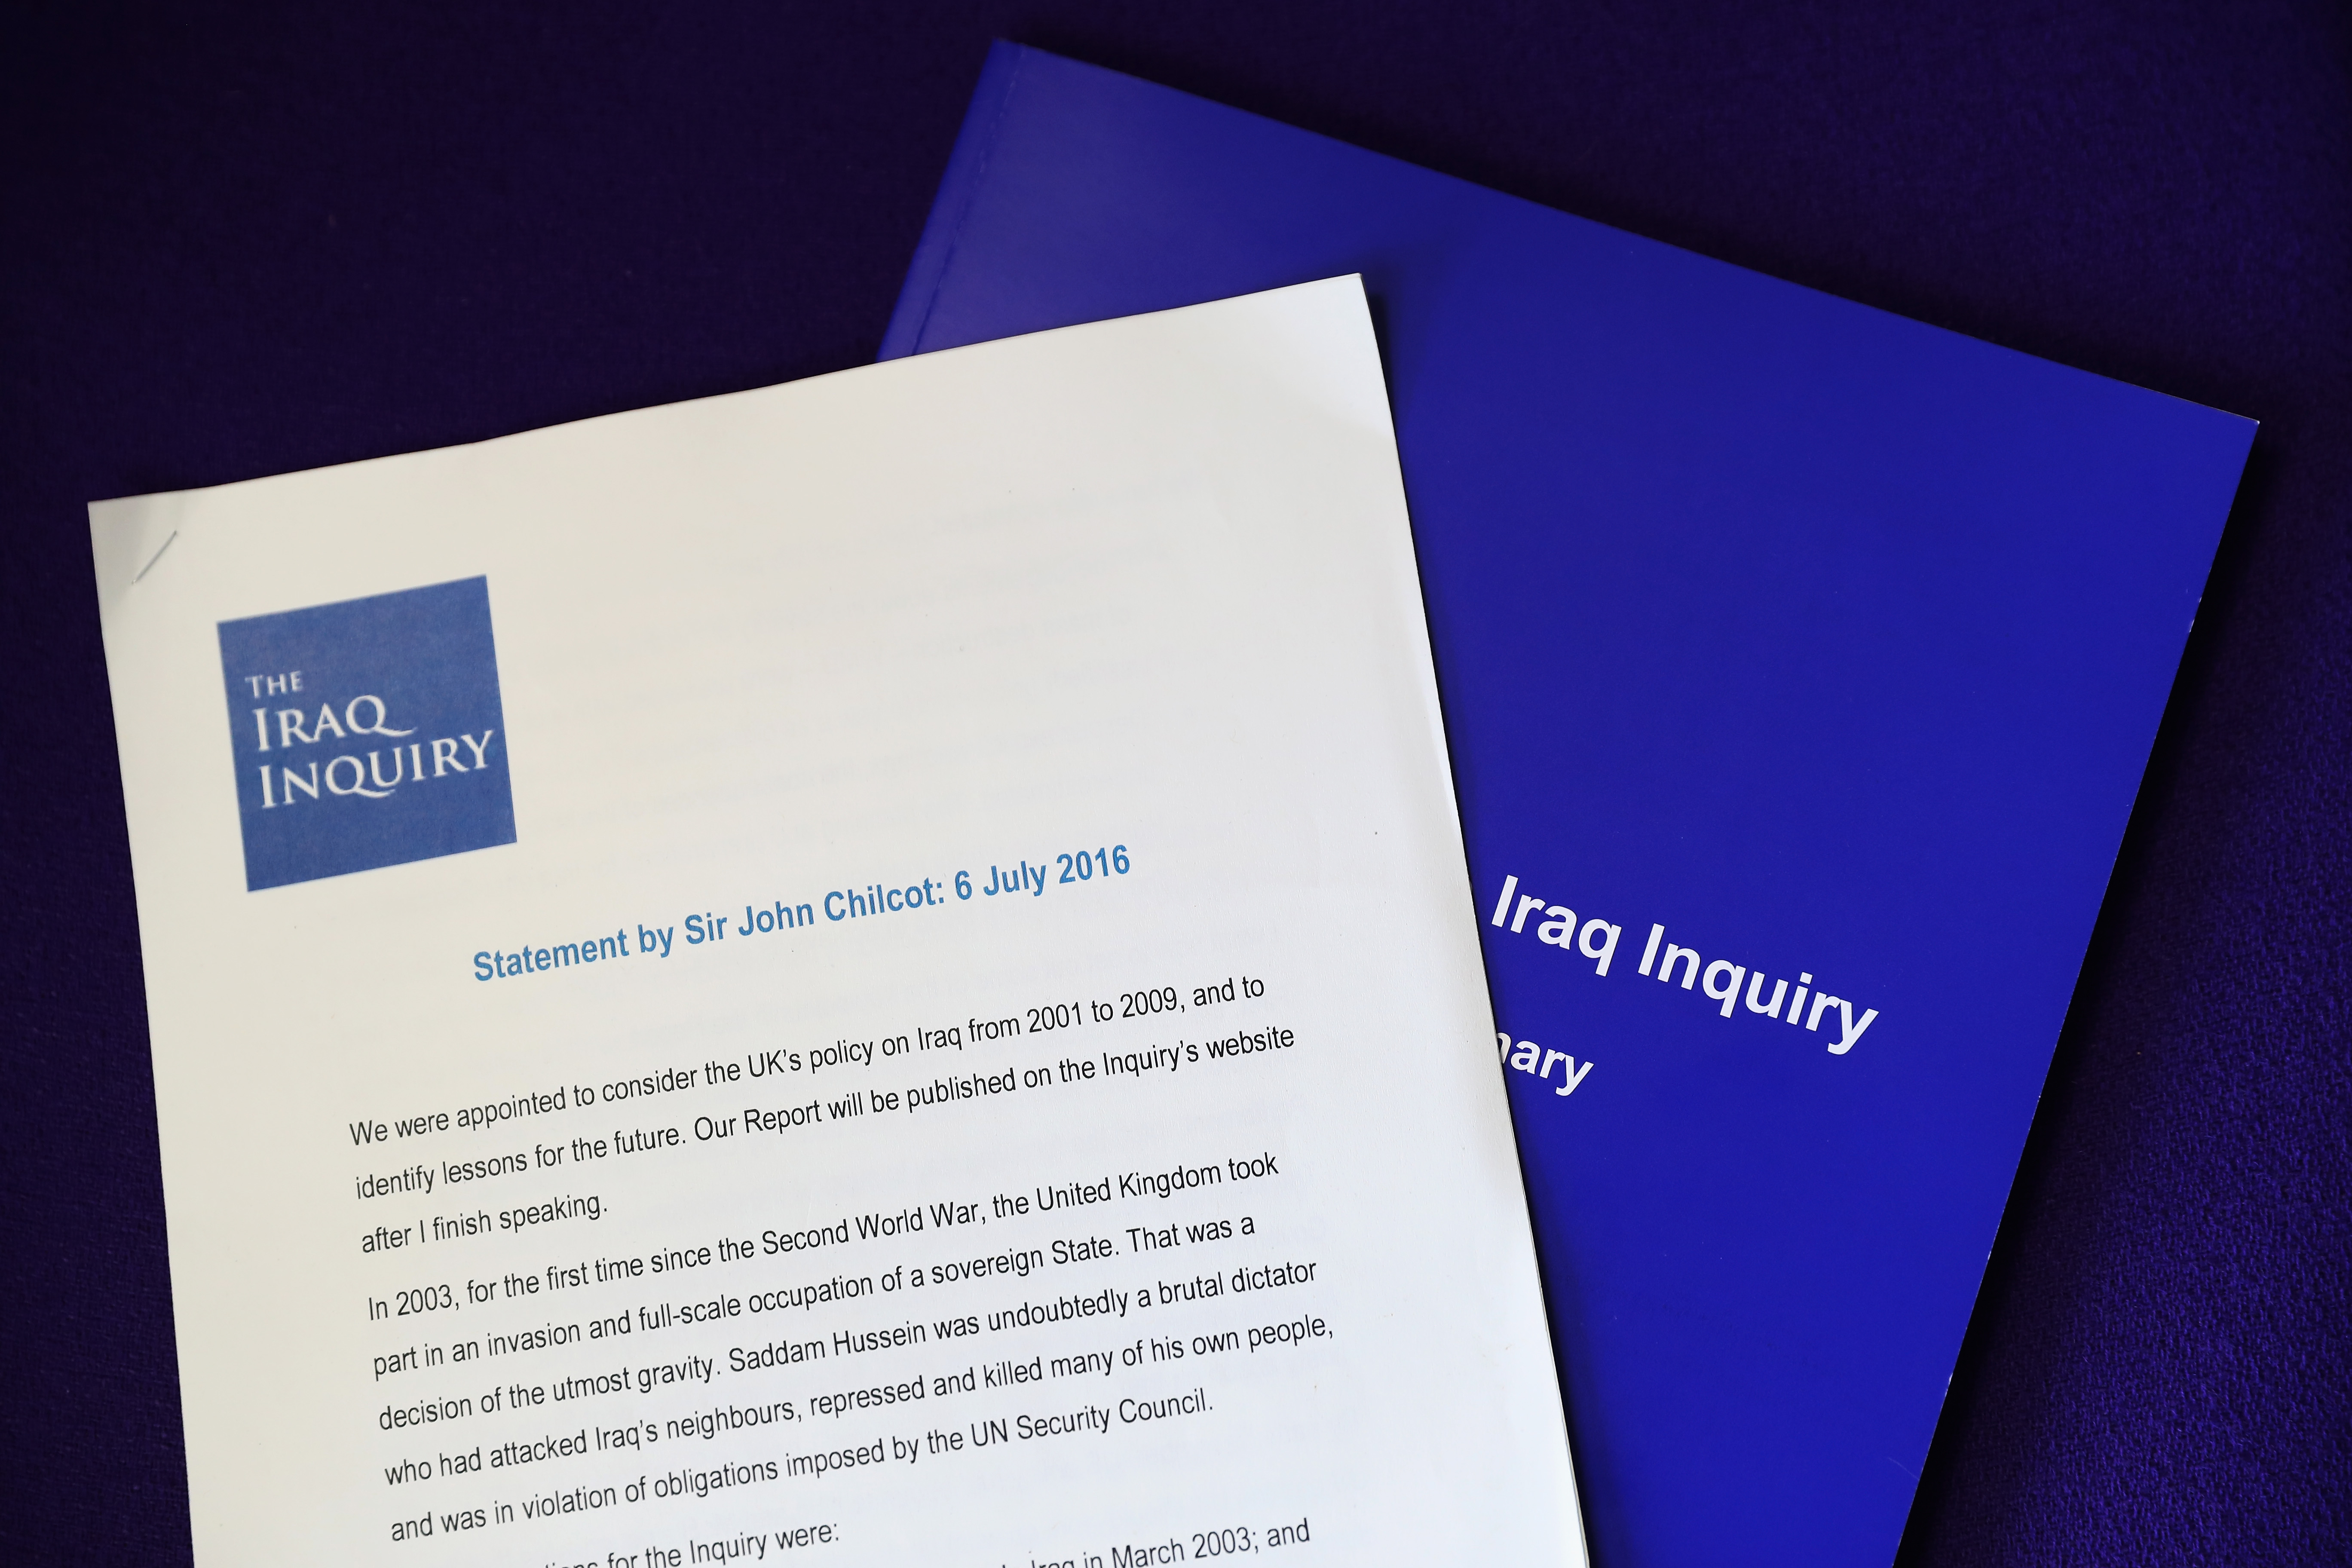 A view of The Iraq Inquiry Report presented by Sir John Chilcot at the Queen Elizabeth II Centre in Westminster on July 6, 2016 in London, England.